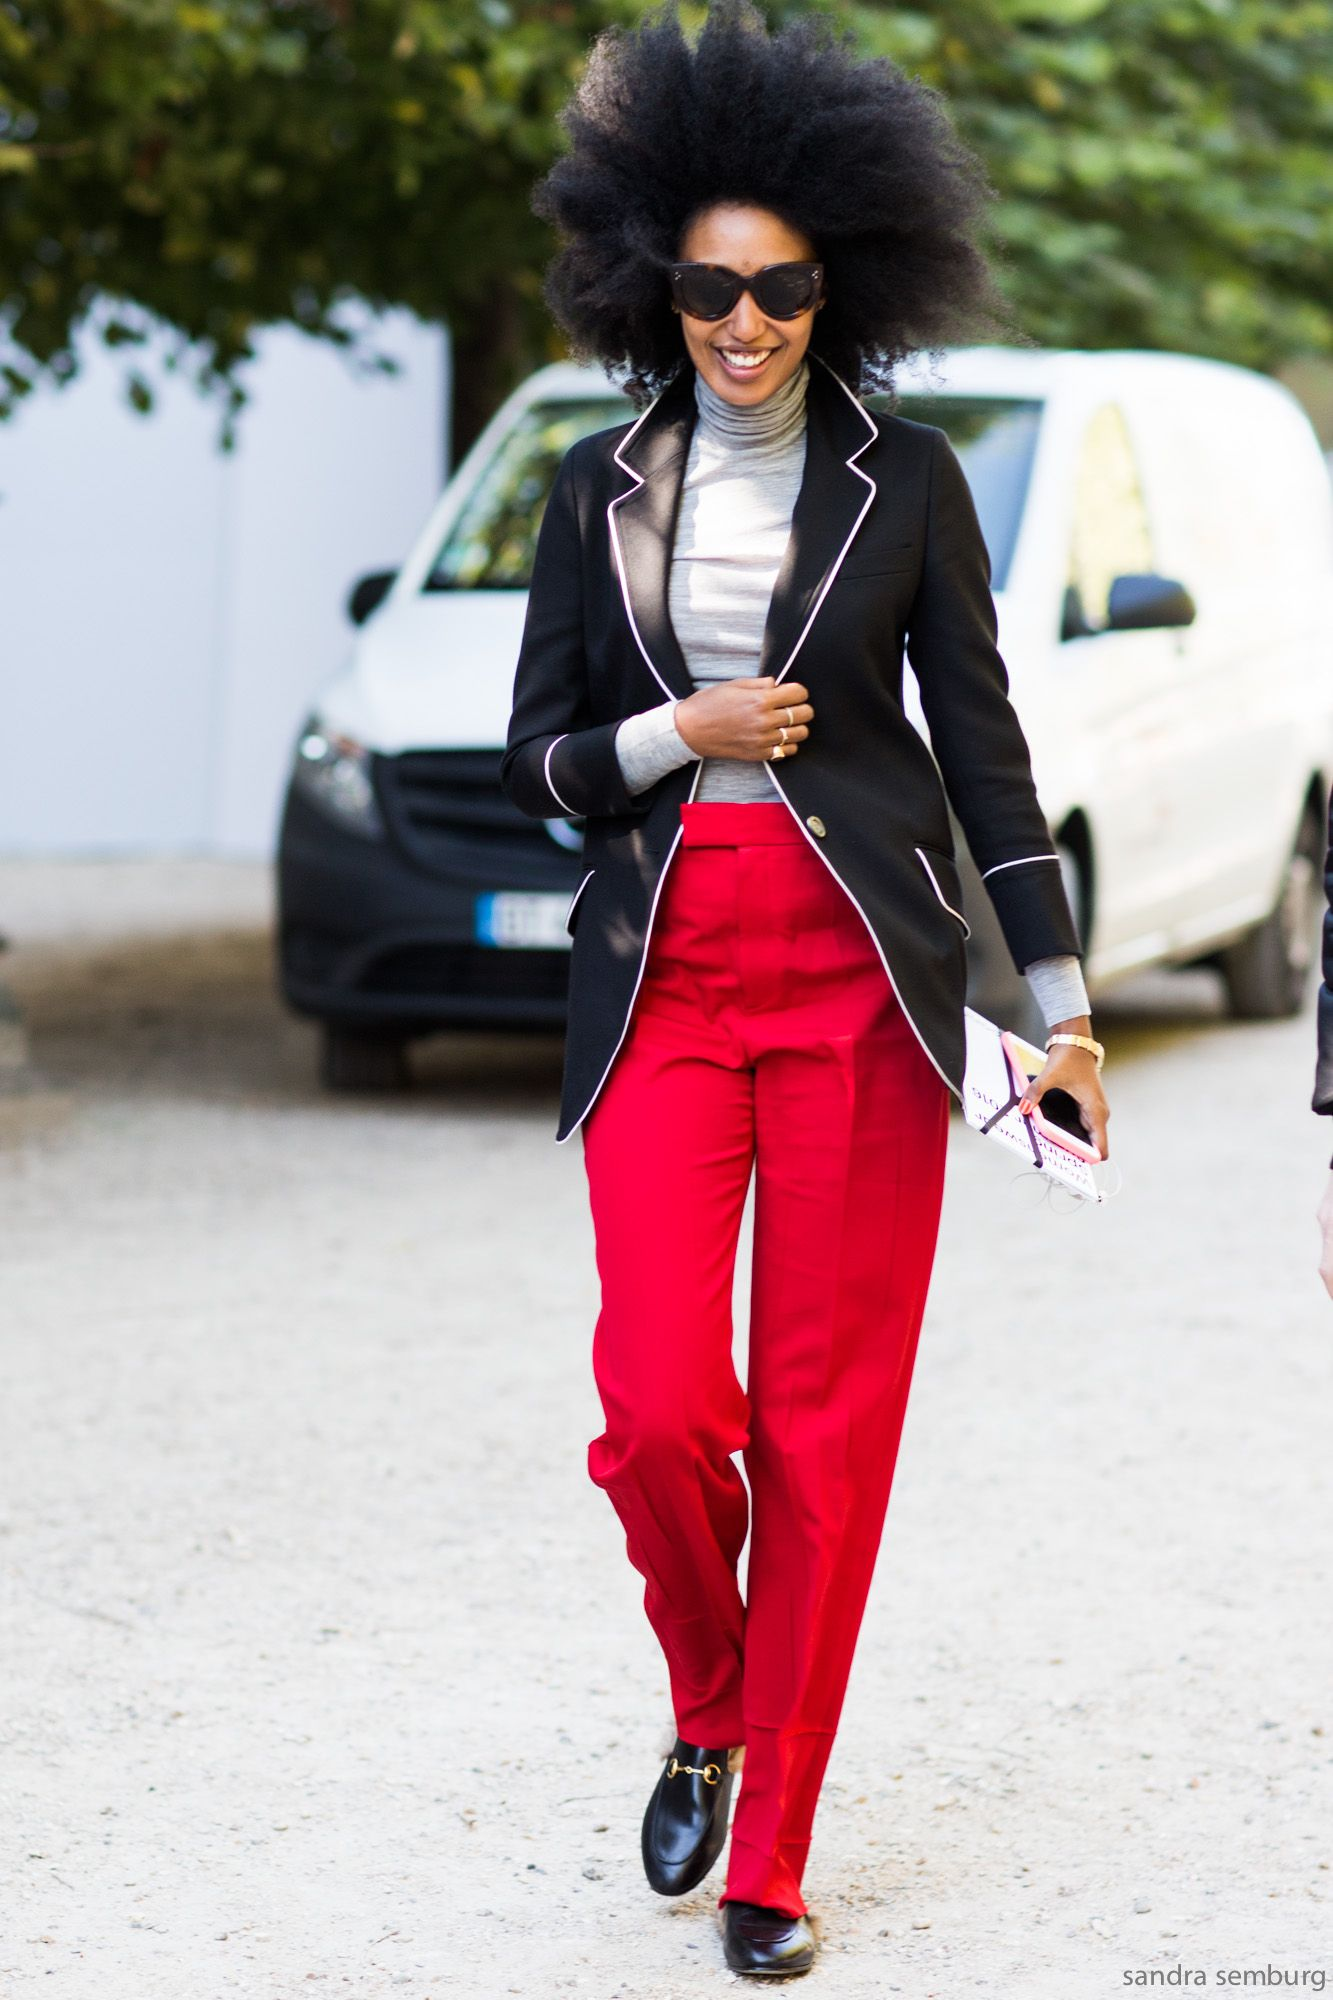 Paris Fashionweek Day 2 / Street Style #streetstyle #fashion #streetfashion